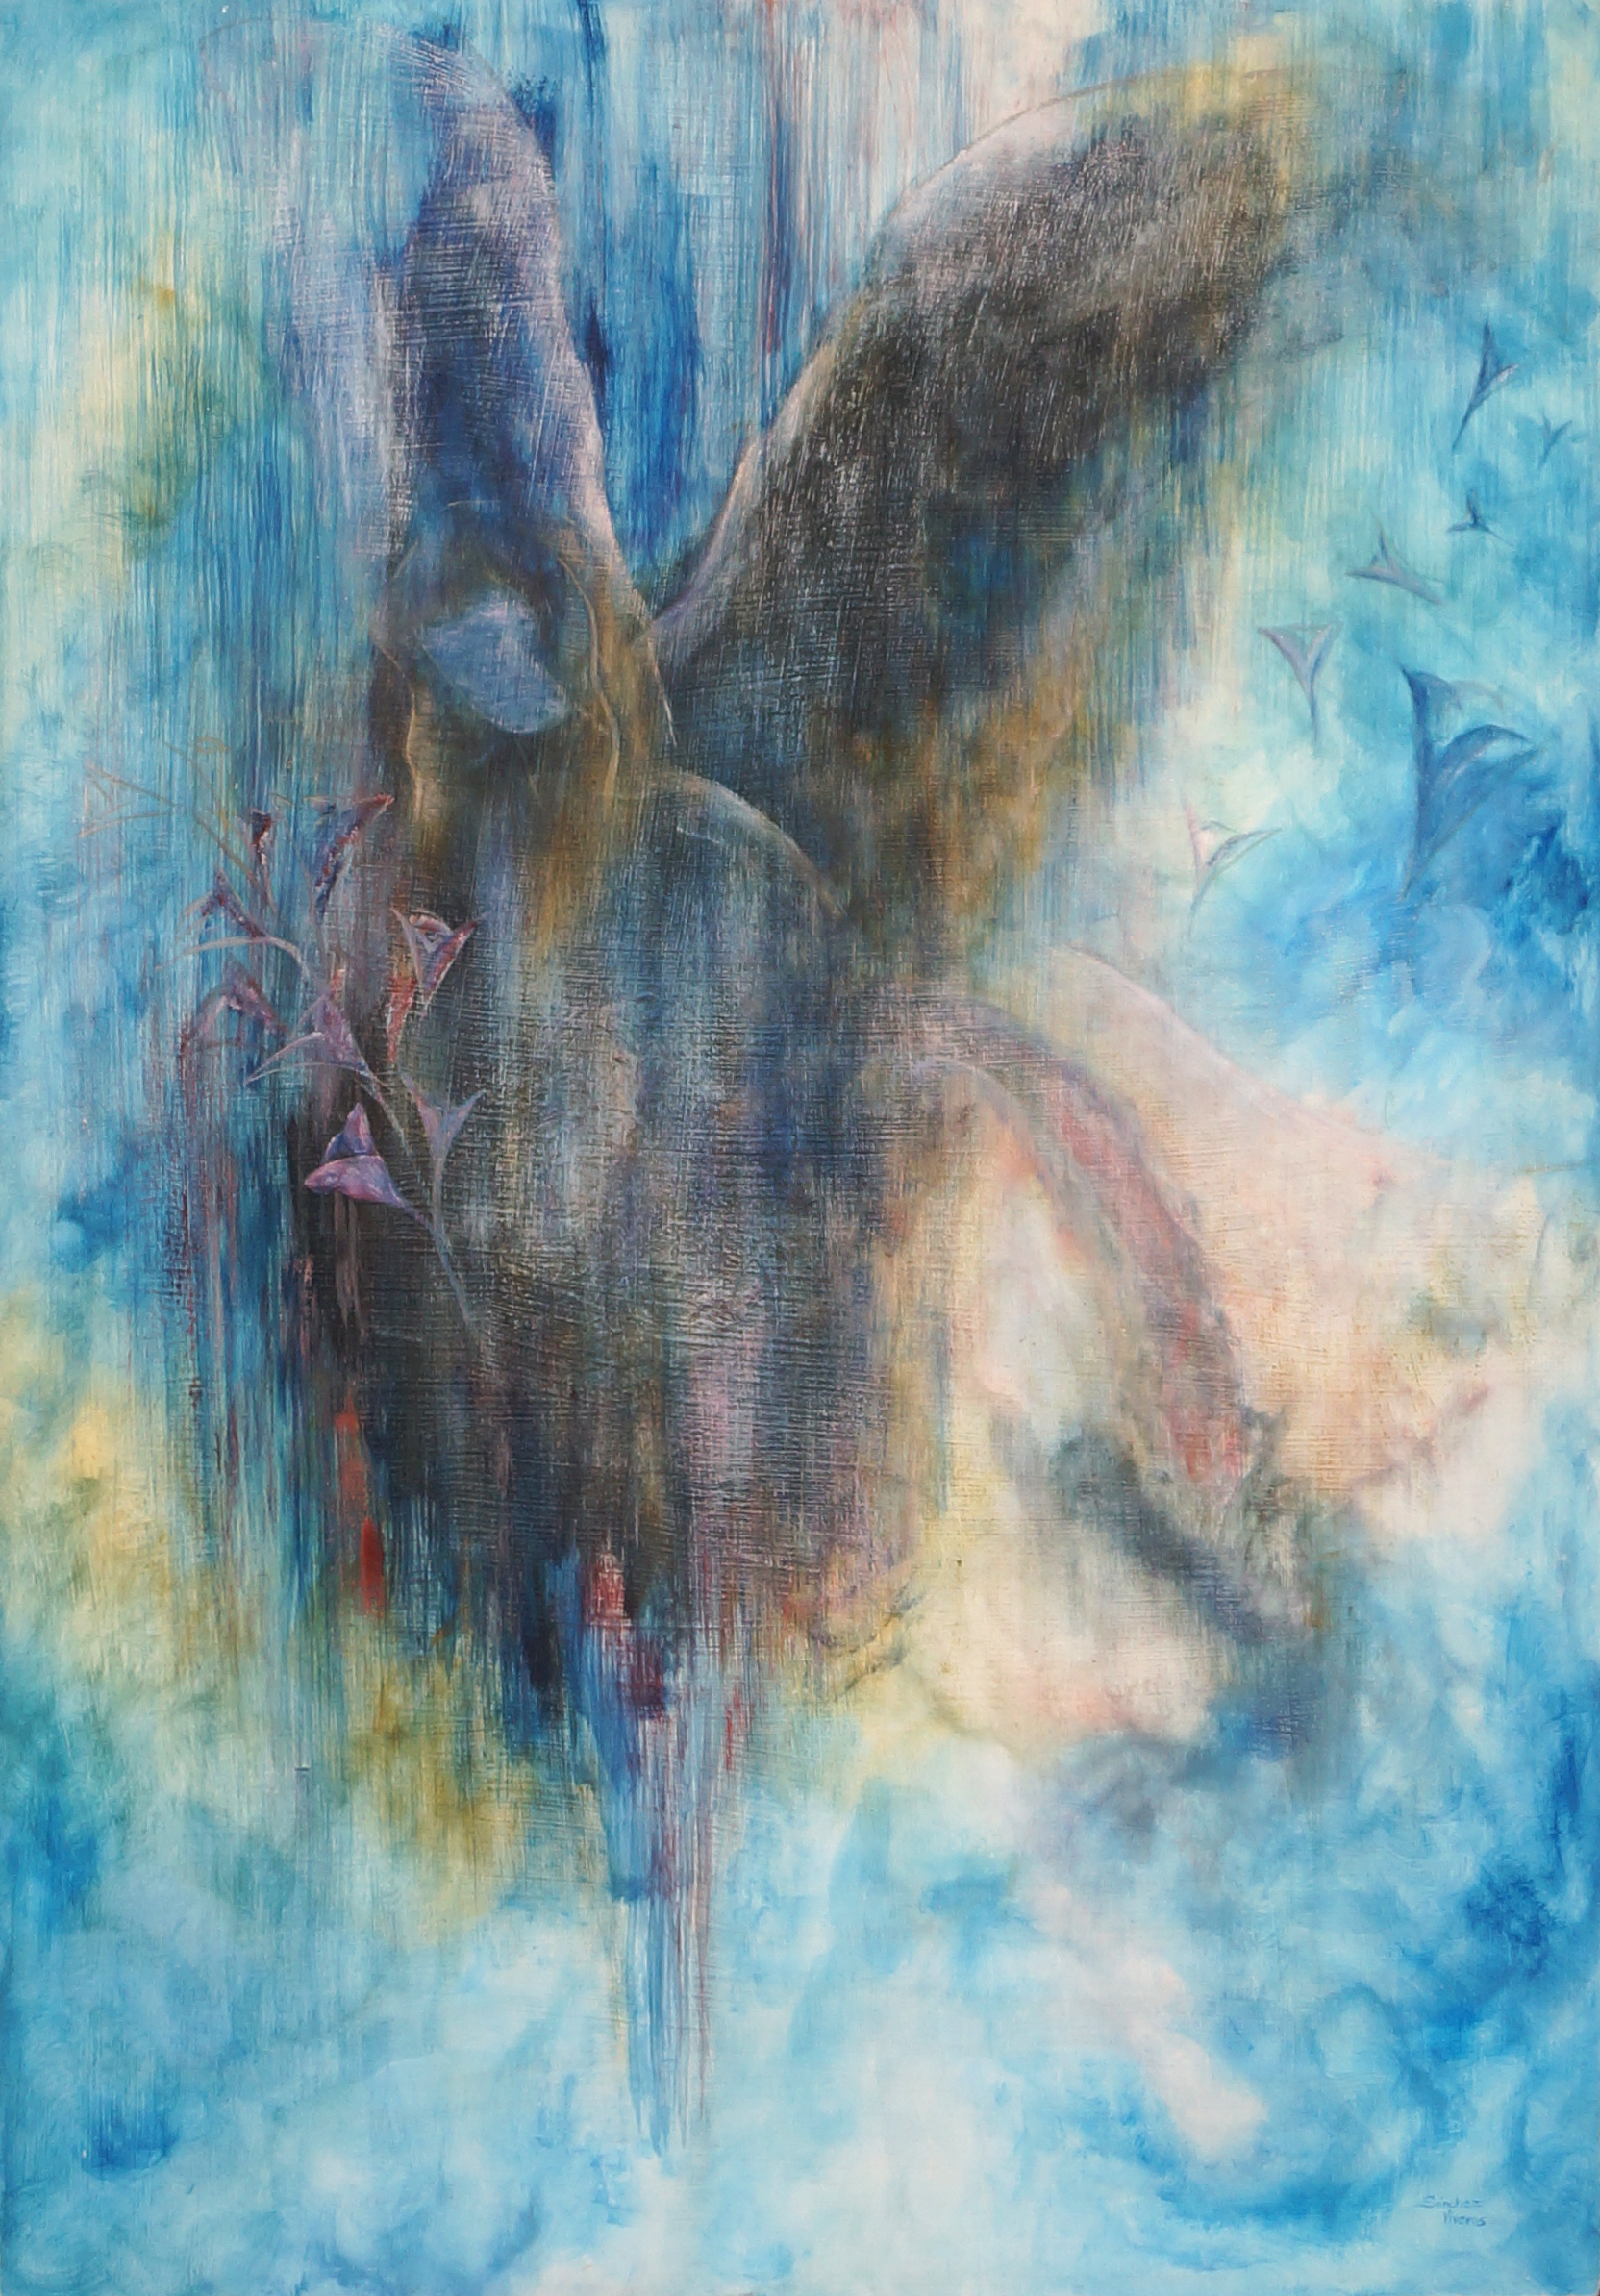 Archangel Gabriel, 2009  Mixed technique: acrylic and oil on wood  122 x 86 cm